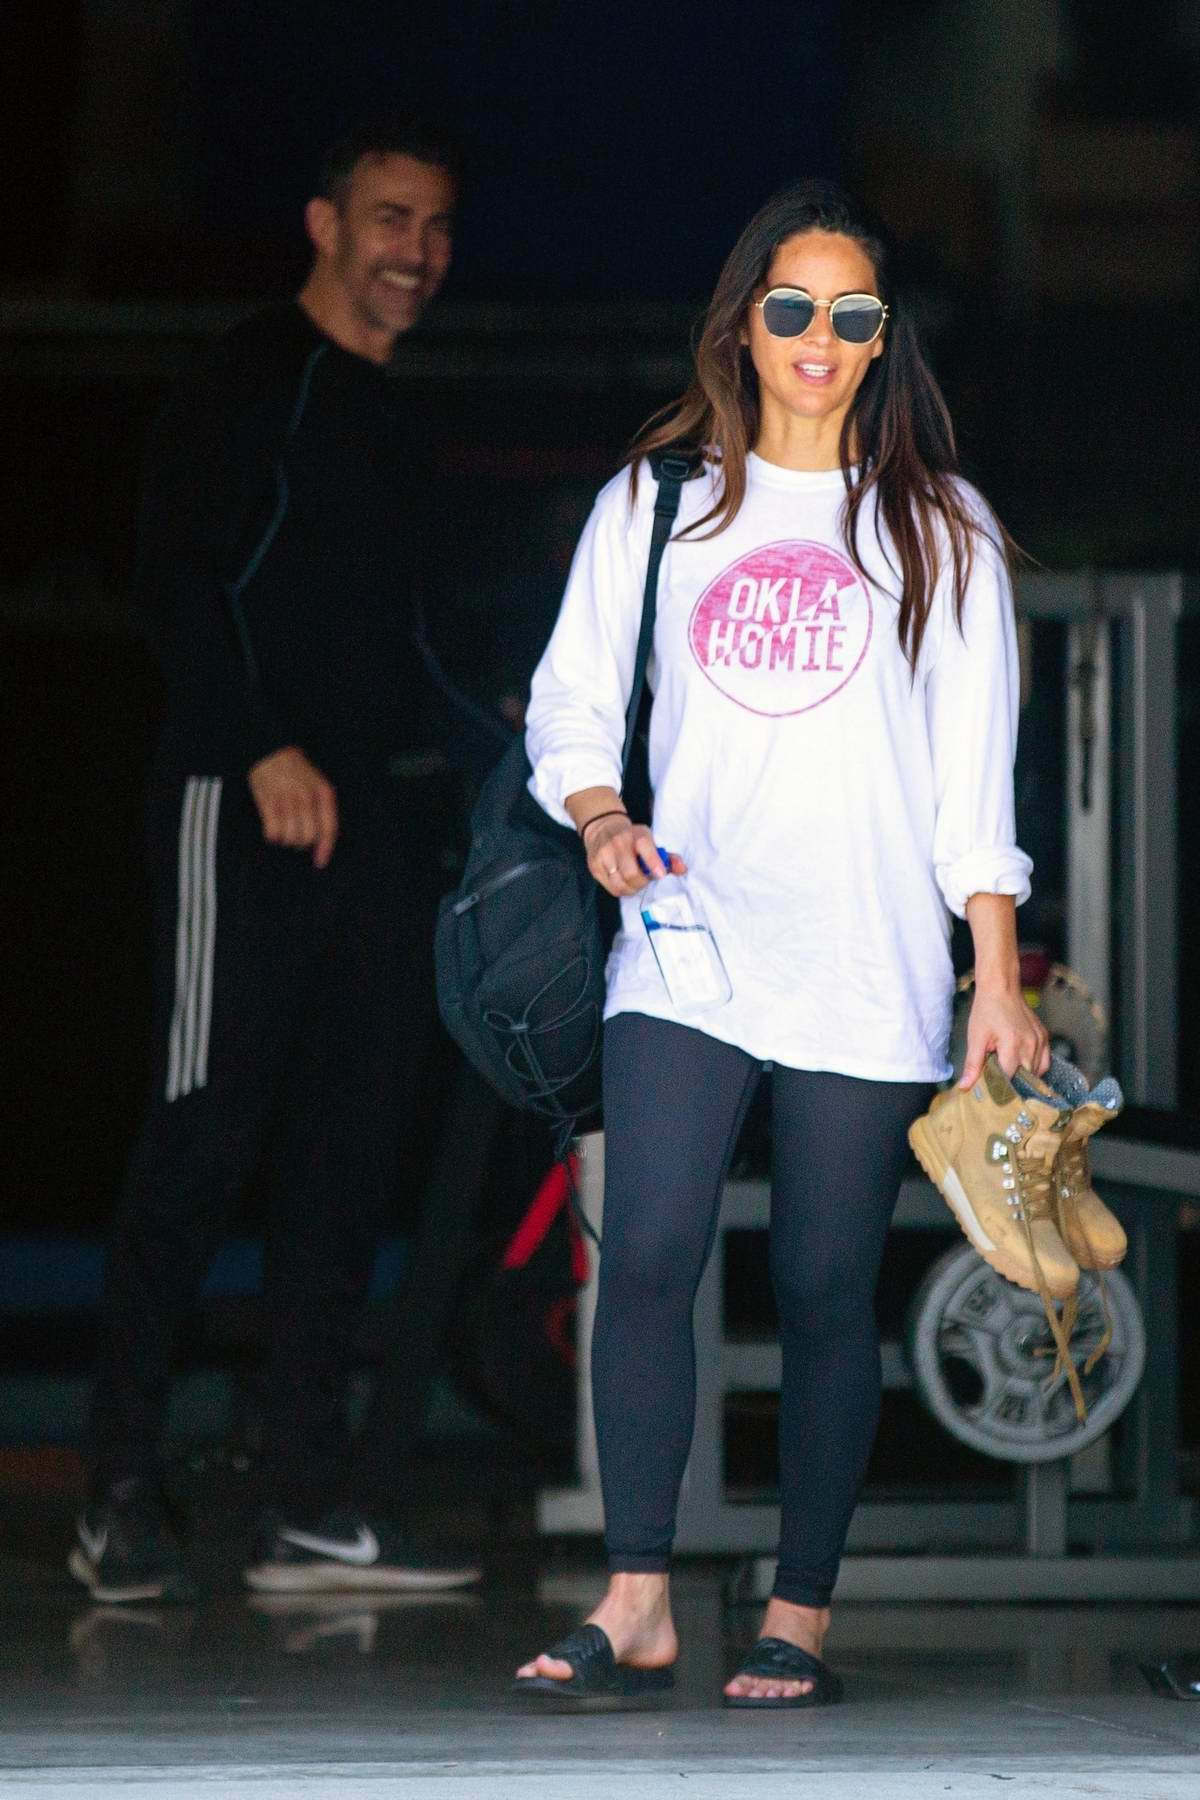 Olivia Munn seen leaving after a workout session at a private gym in Los Angeles